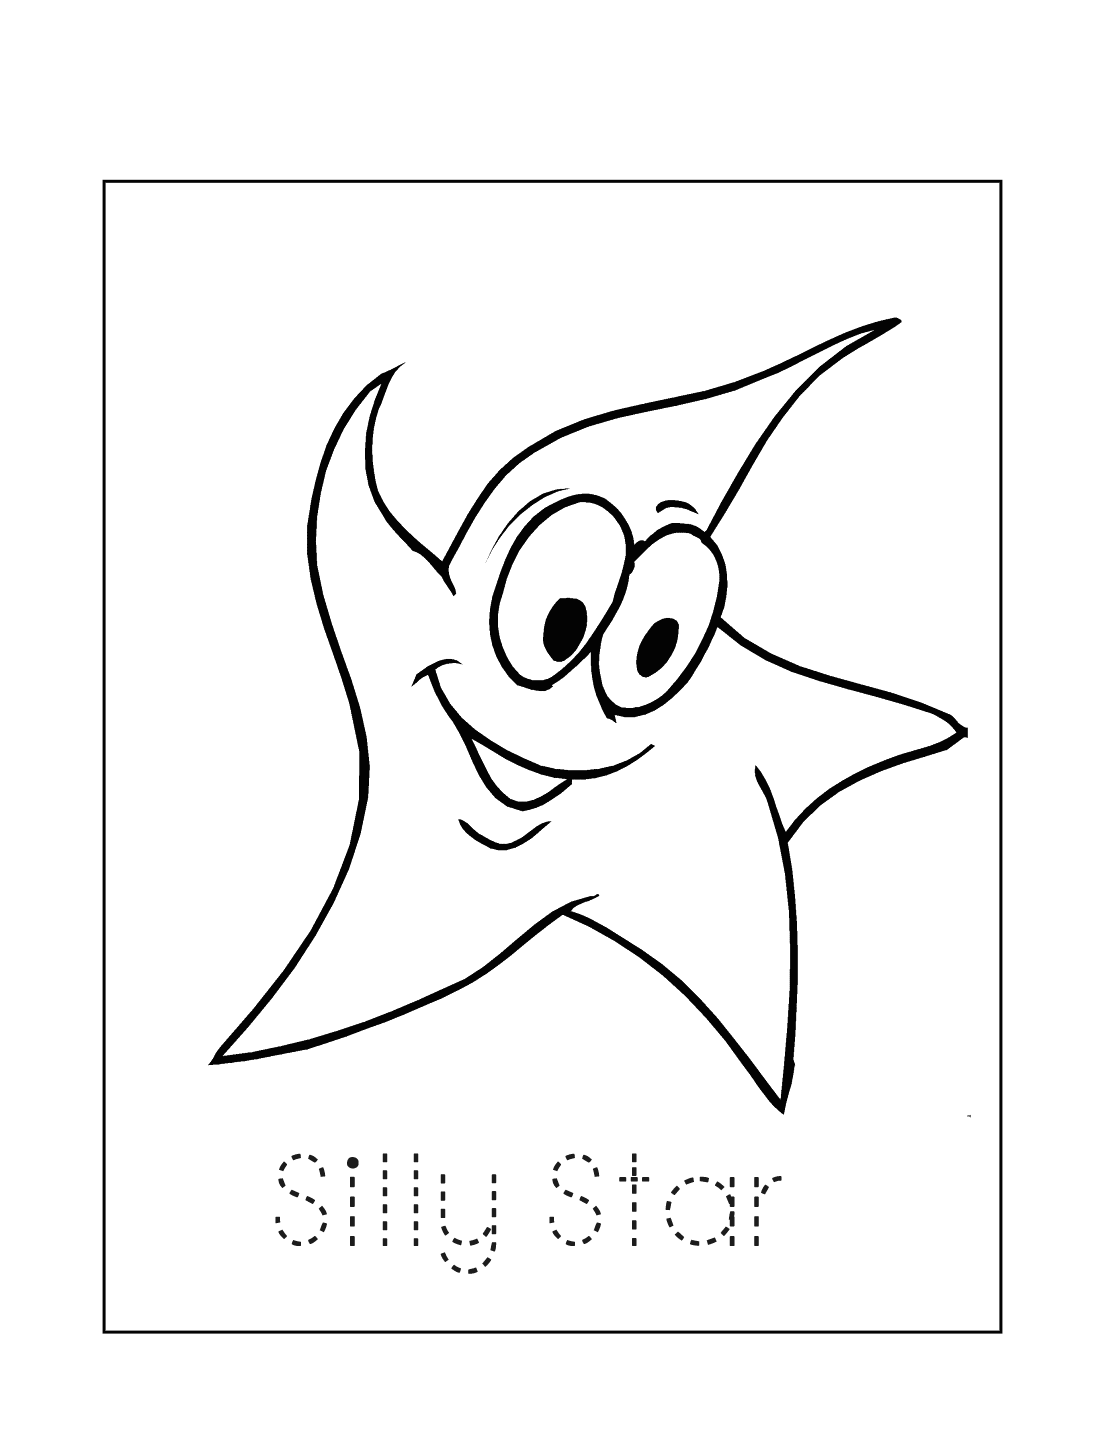 Silly Star Coloring Page